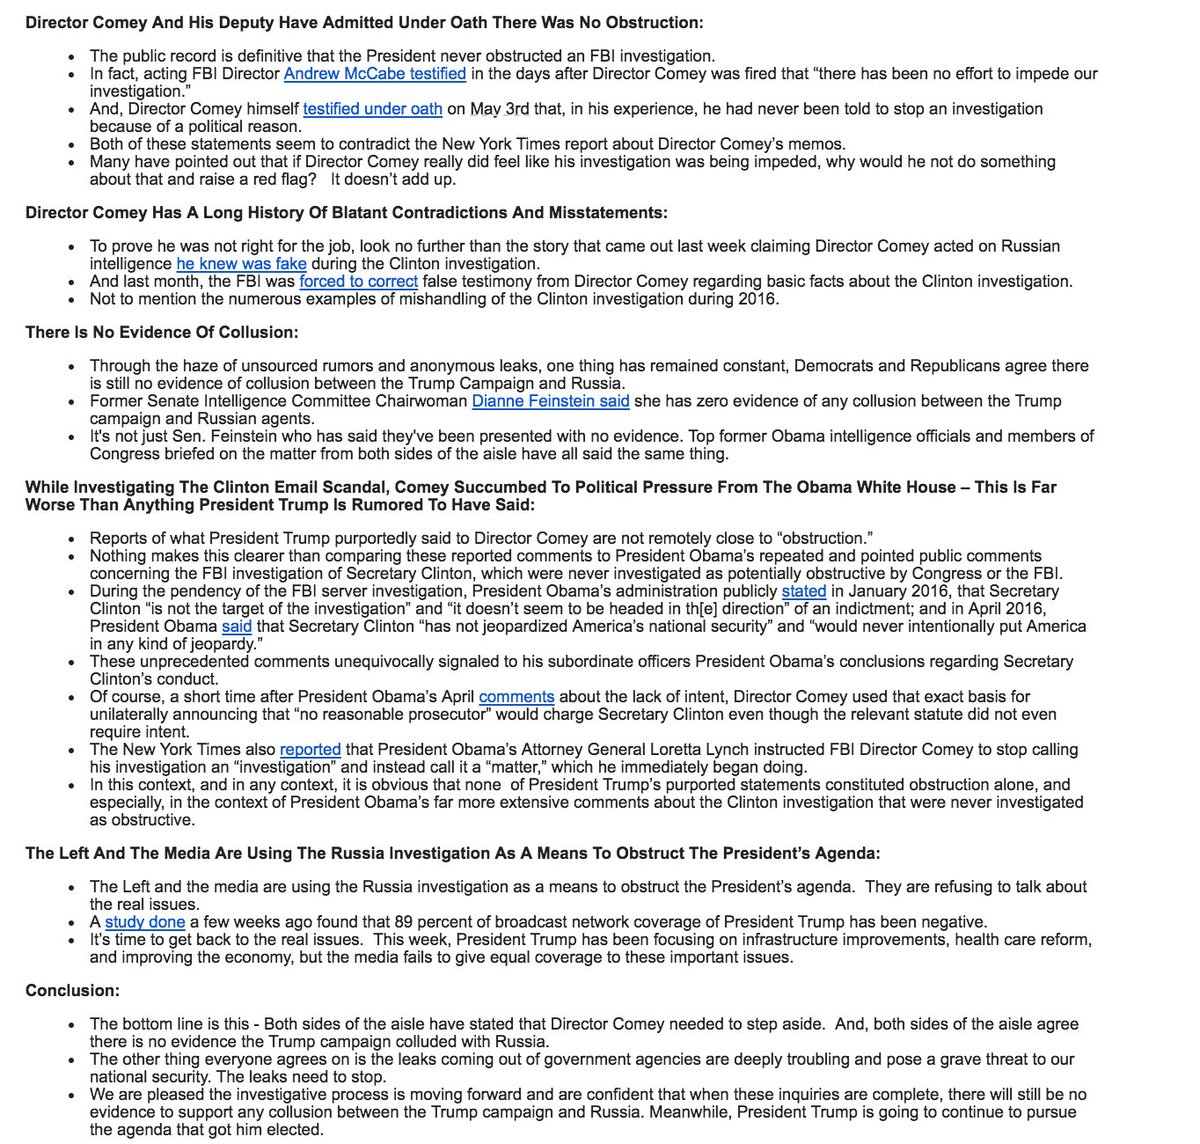 Here are the RNC talking points to Trump allies on Comey's testimony tomorrow https://t.co/8X9NKTQHMe